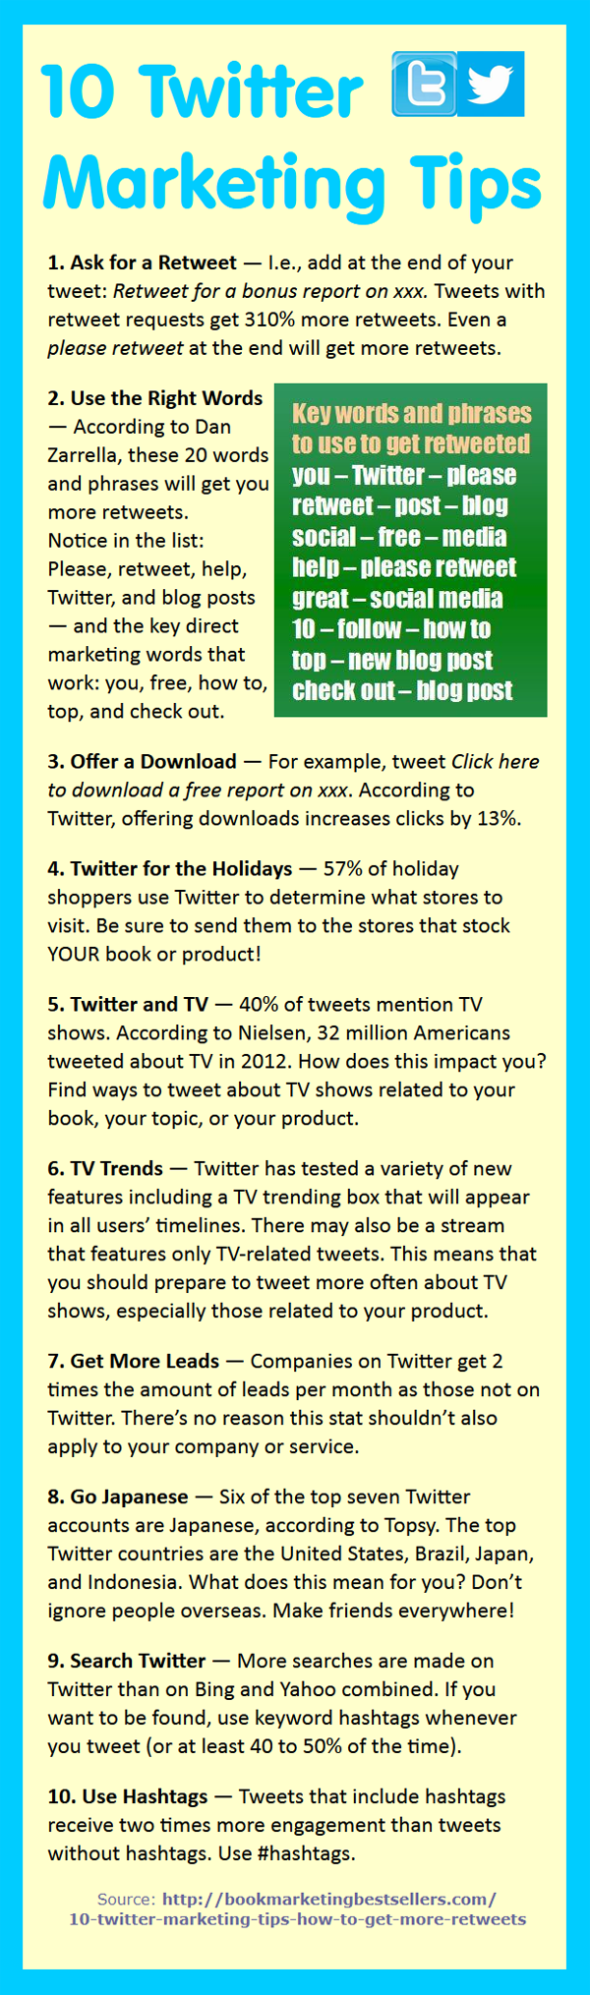 10 Twitter Marketing Tips